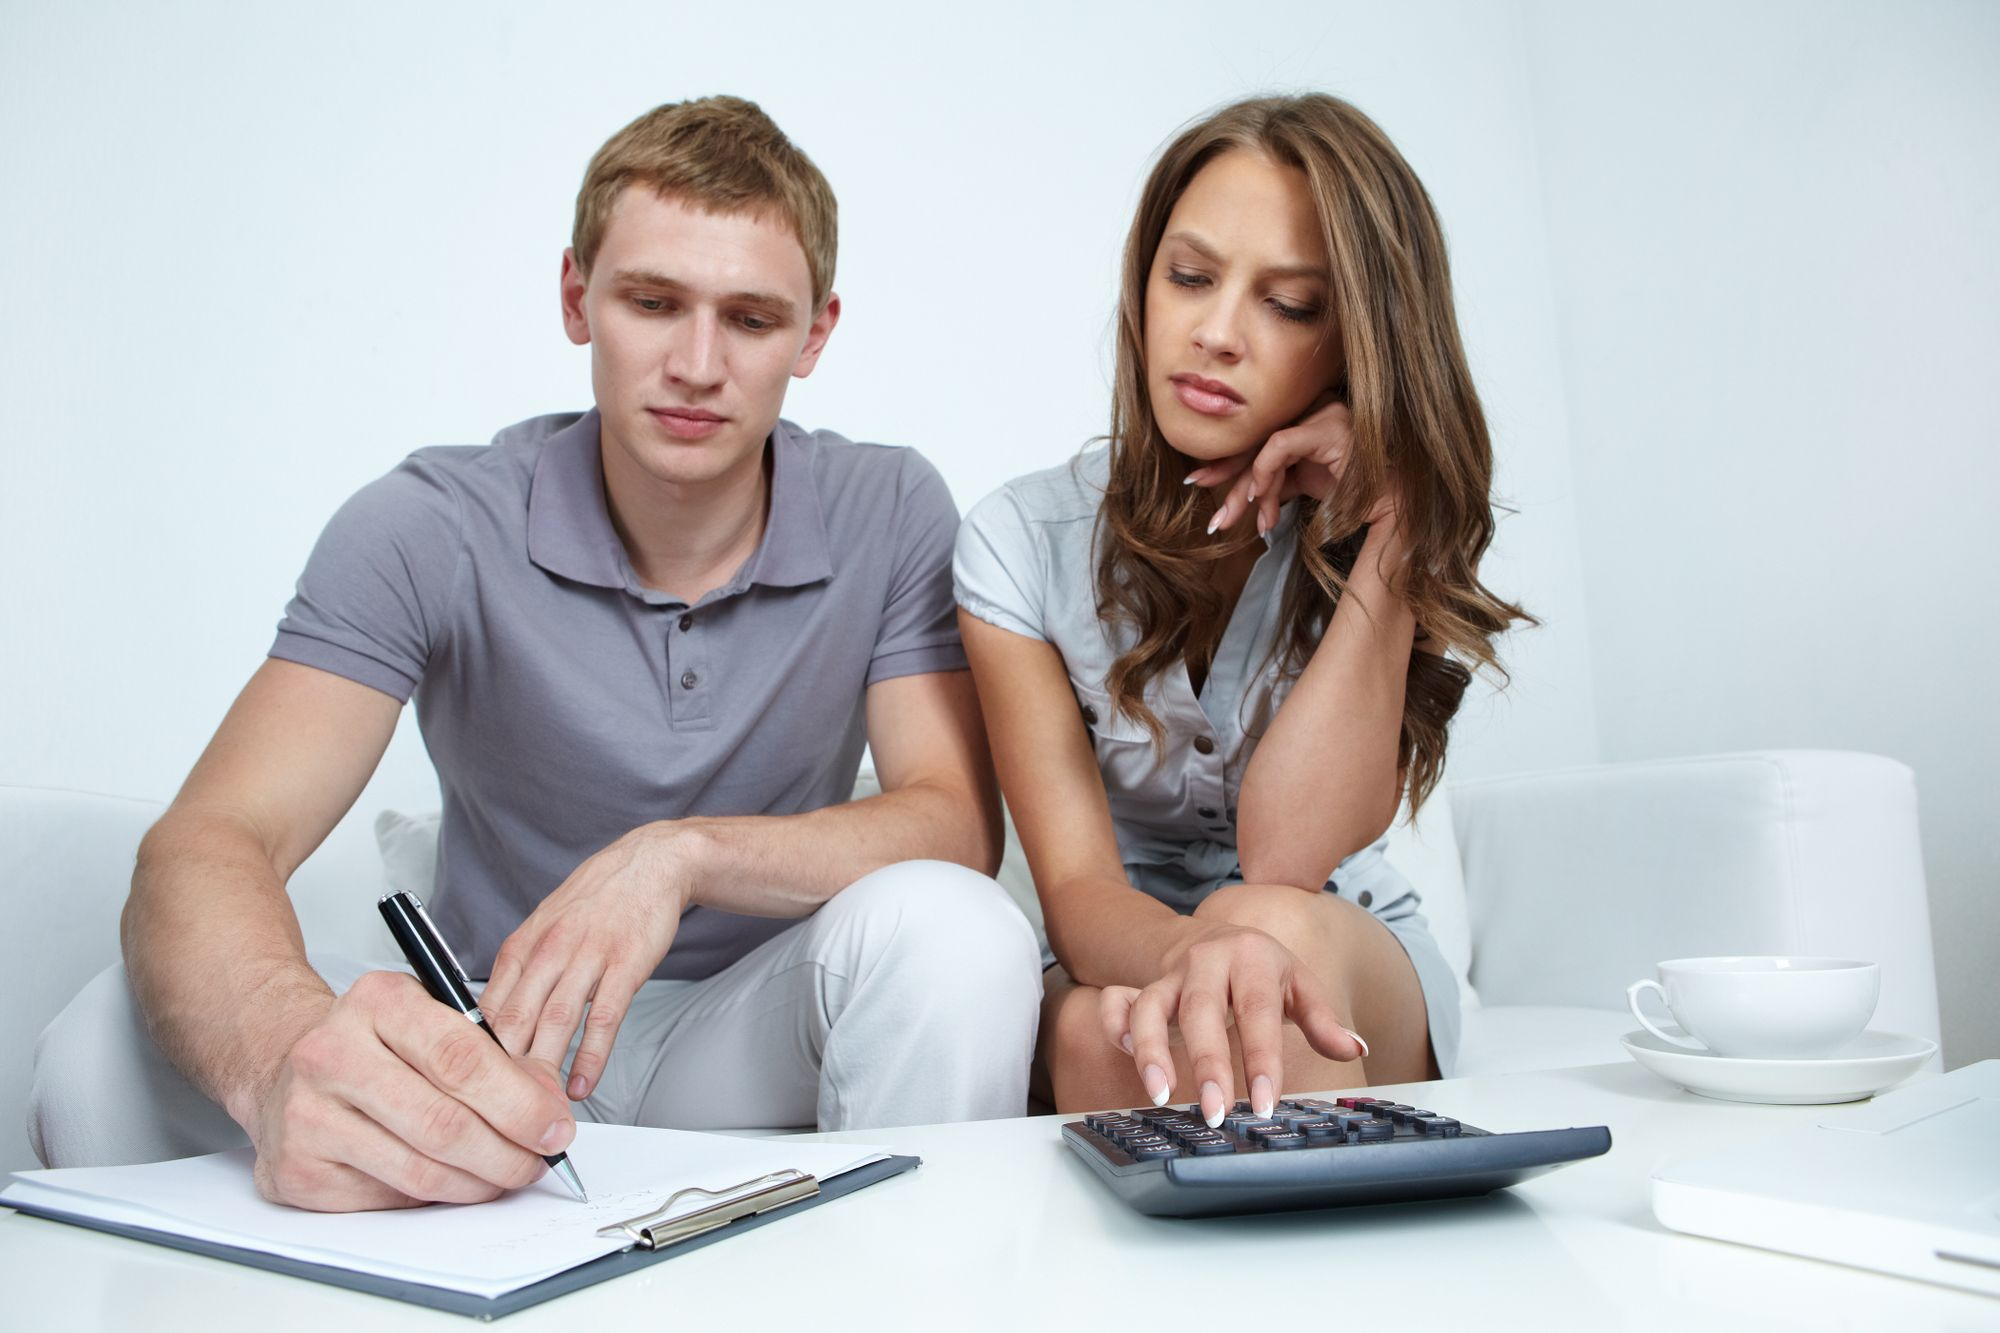 Use the online tool and see if you are entitled to additional benefits. Image Getty Images